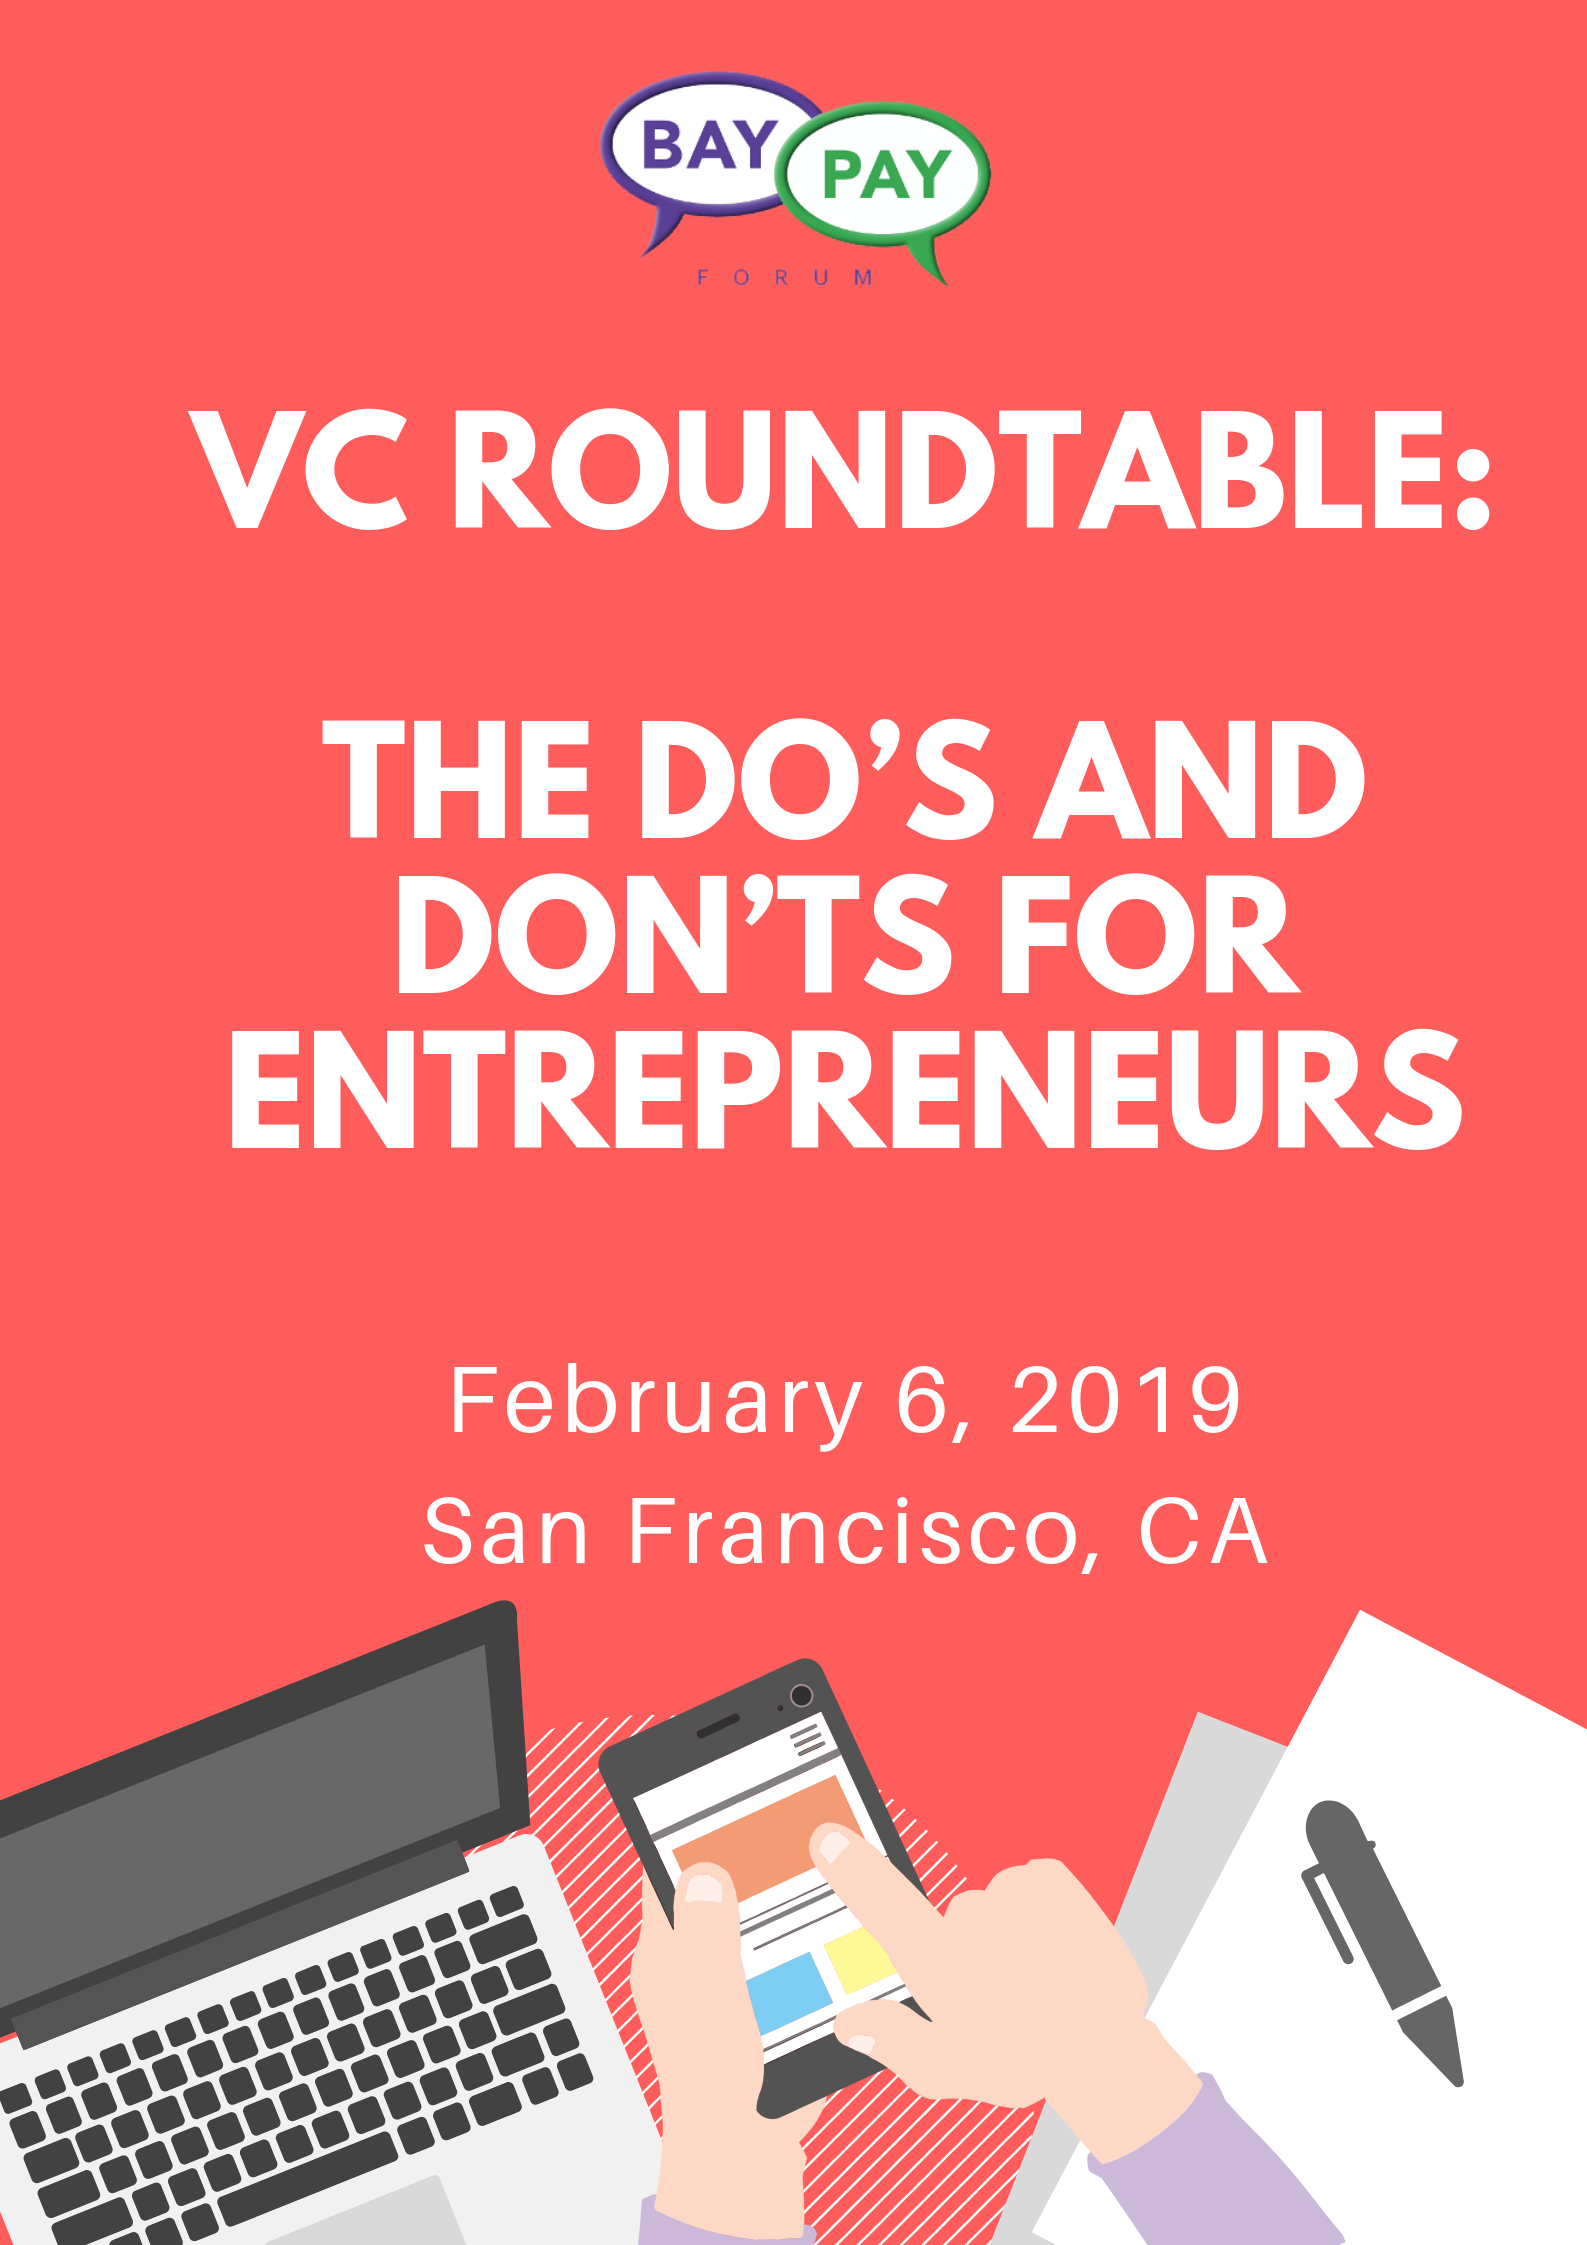 VC Roundtable: The Do's and Don'ts for Entrepreneurs (2019)